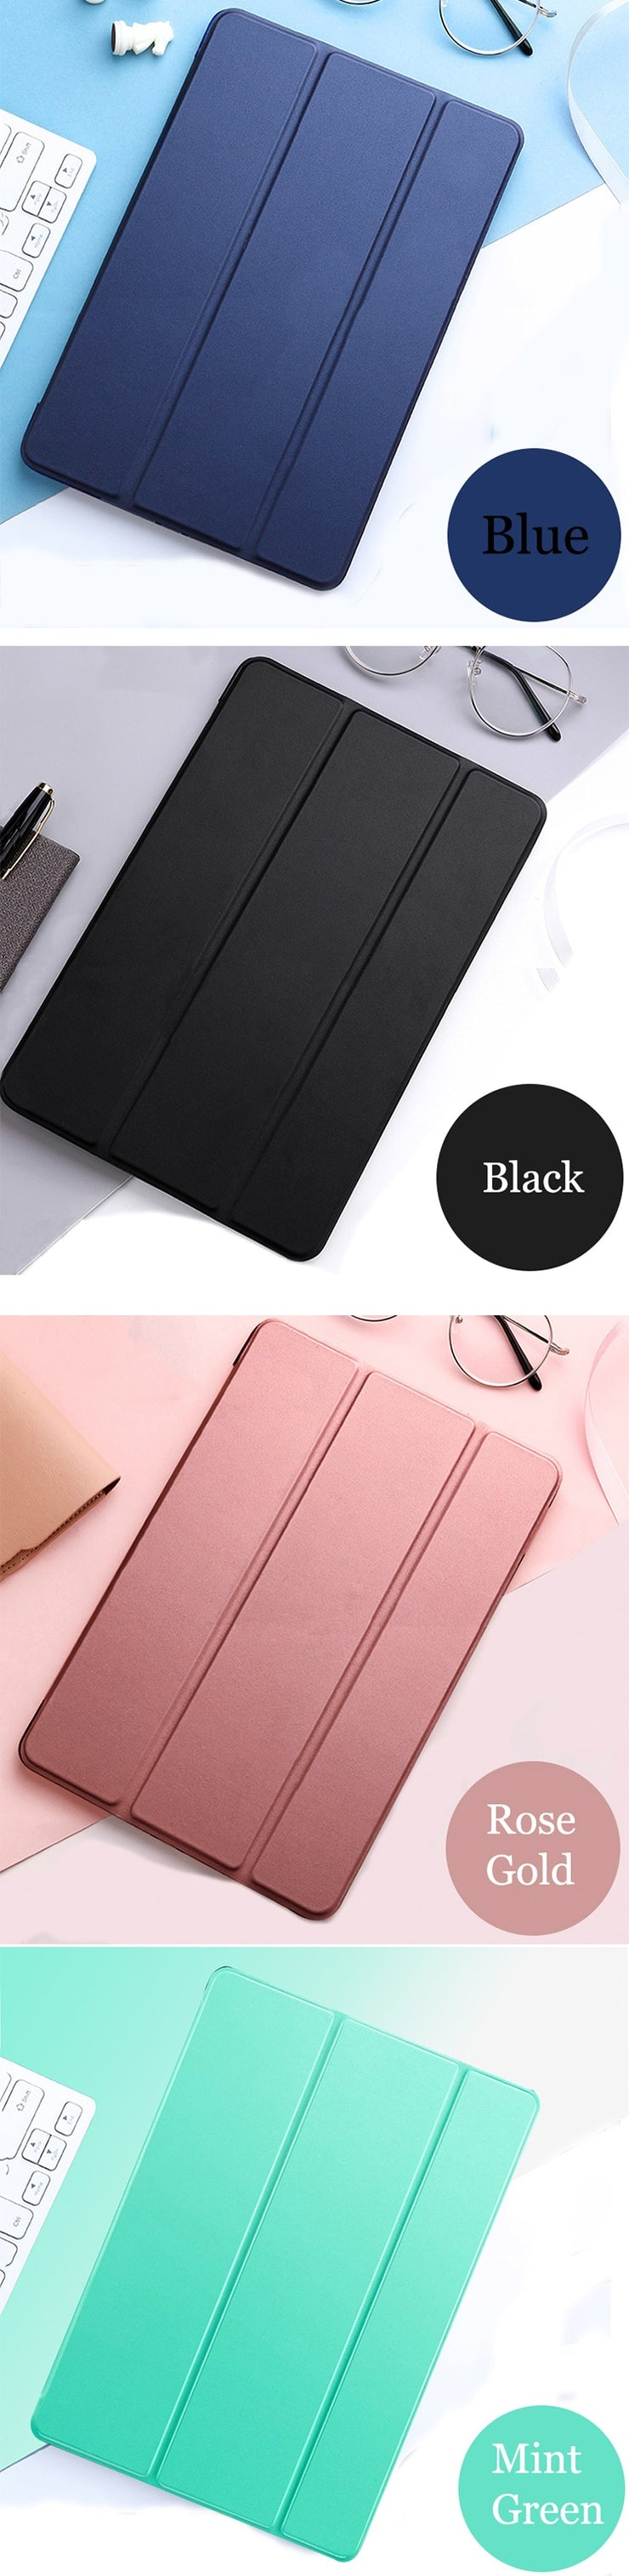 Tablet case for Samsung Galaxy Tab E 9.6 PU Leather Smart Sleep wake funda Trifold Stand Solid cover capa card for SM-T560/T561